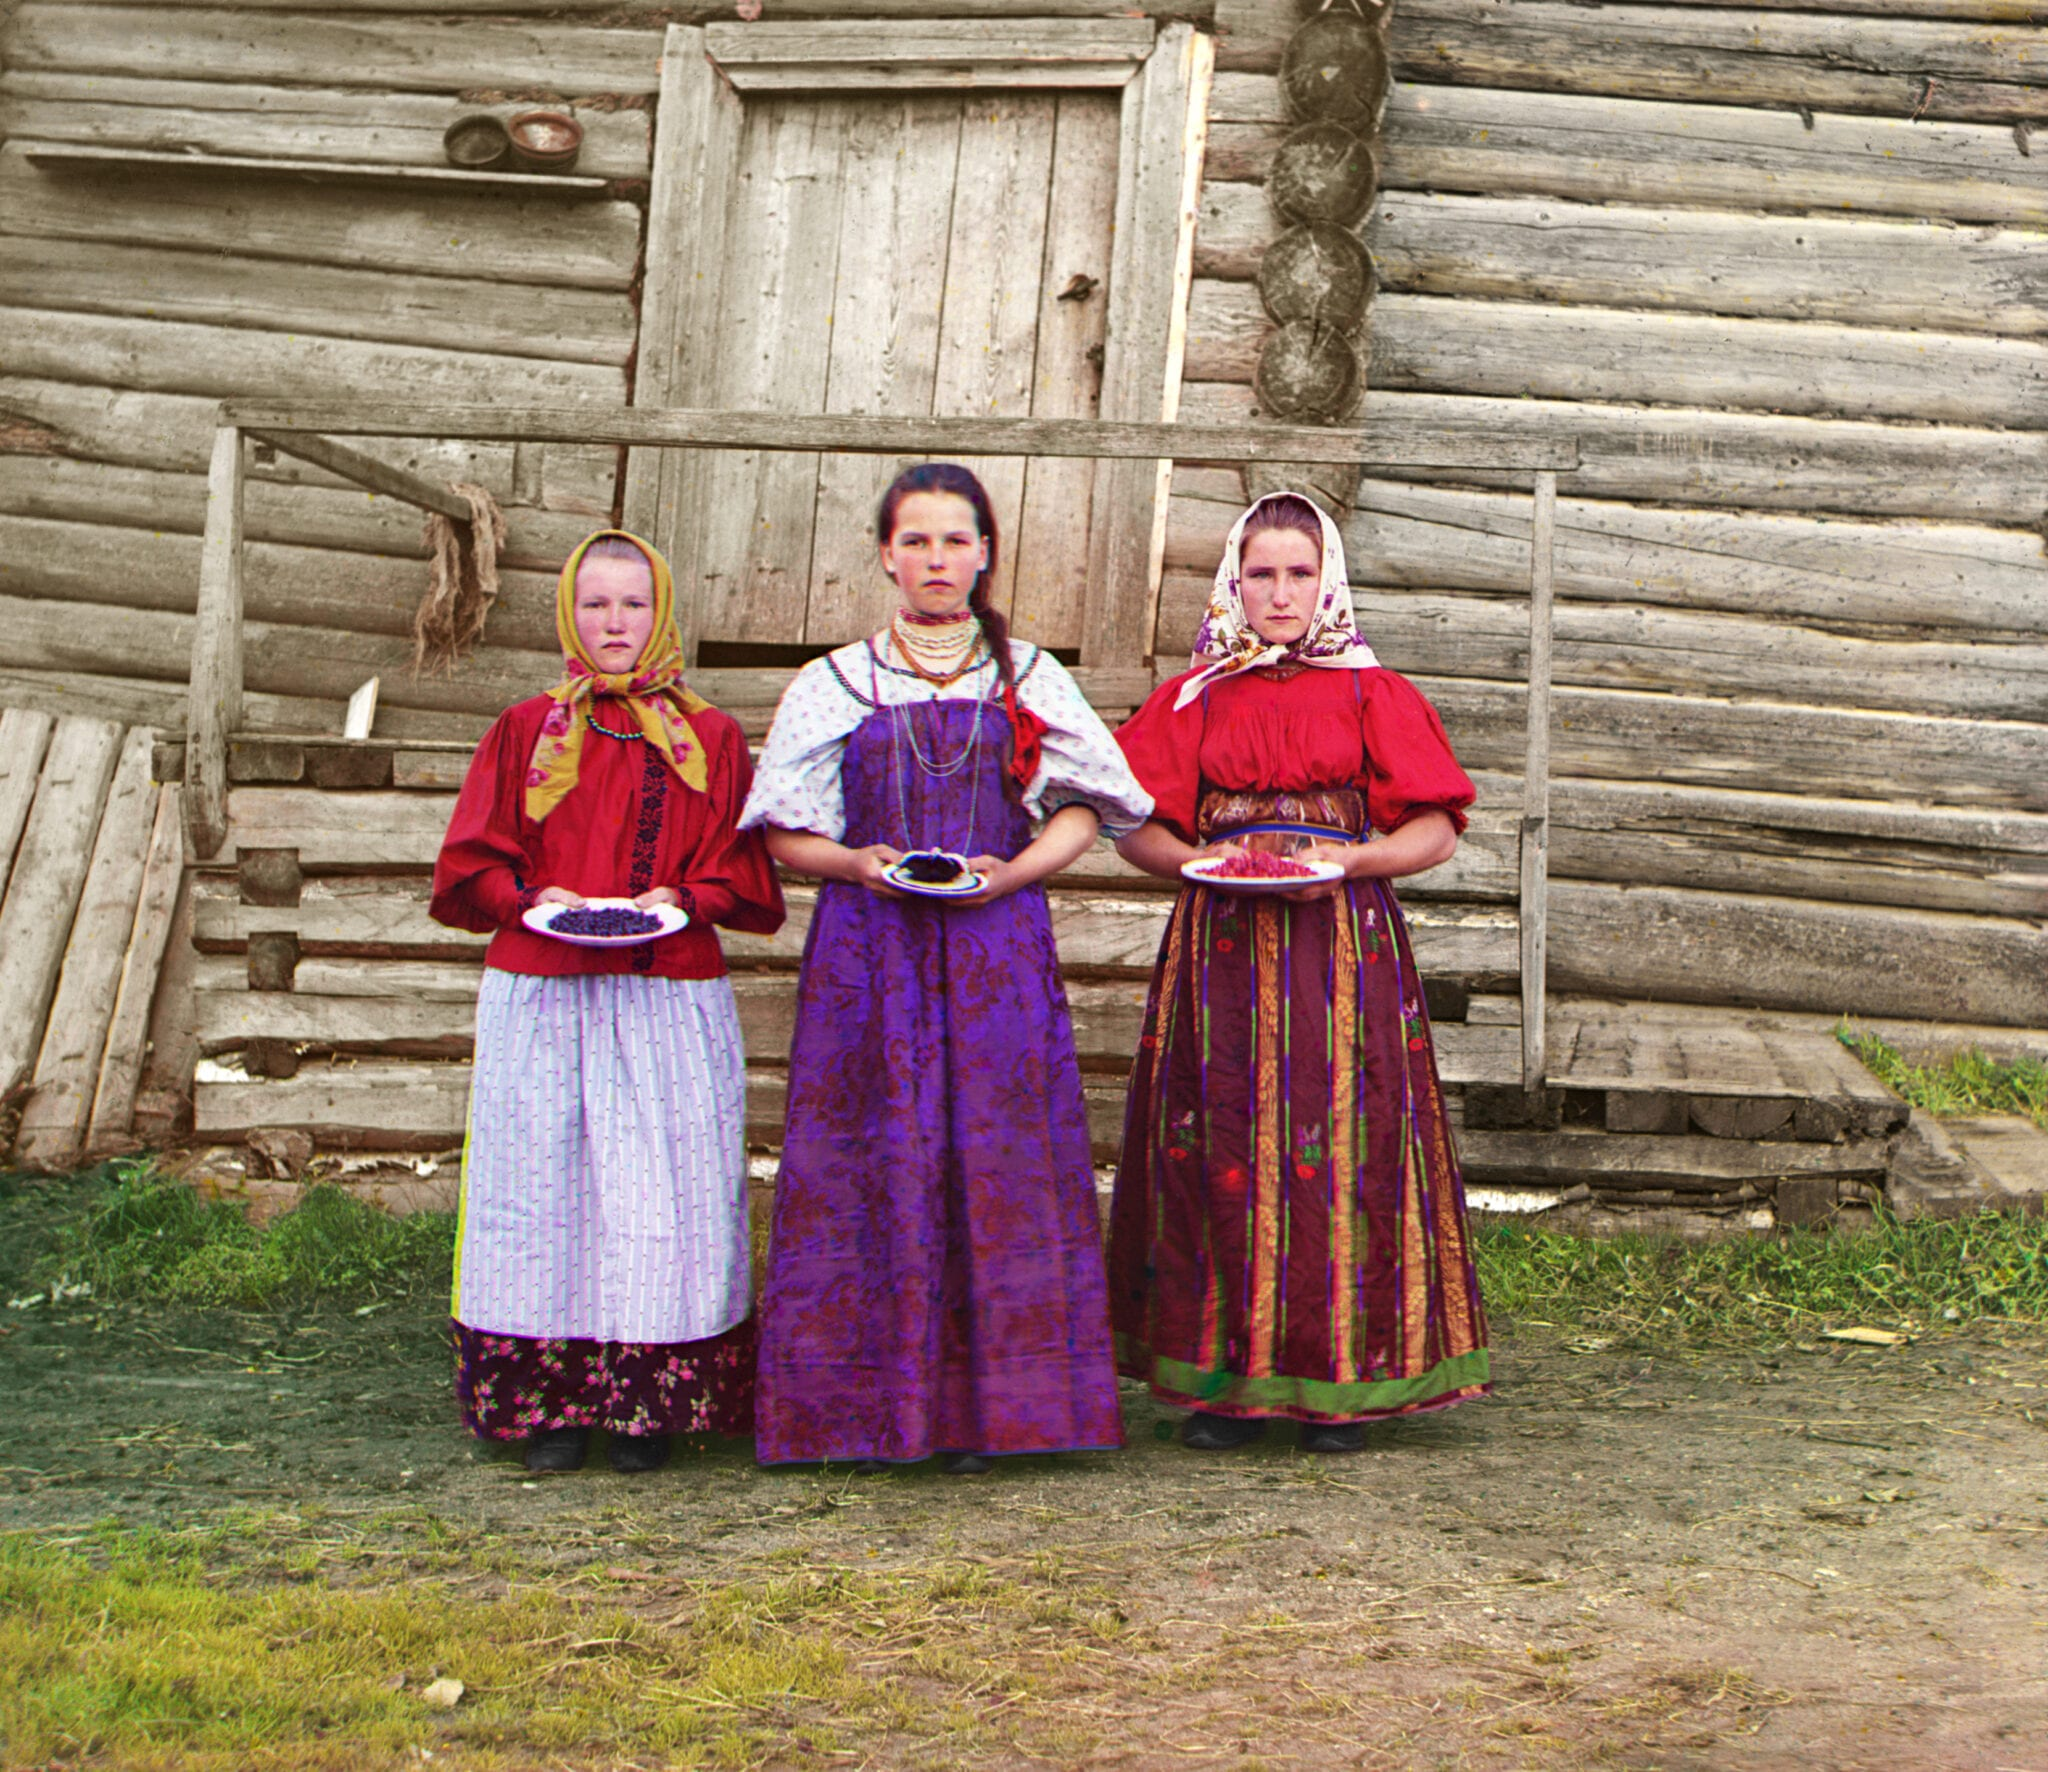 Photographs by the Russian pioneer in color photography, Sergey Prokudin-Gorsky